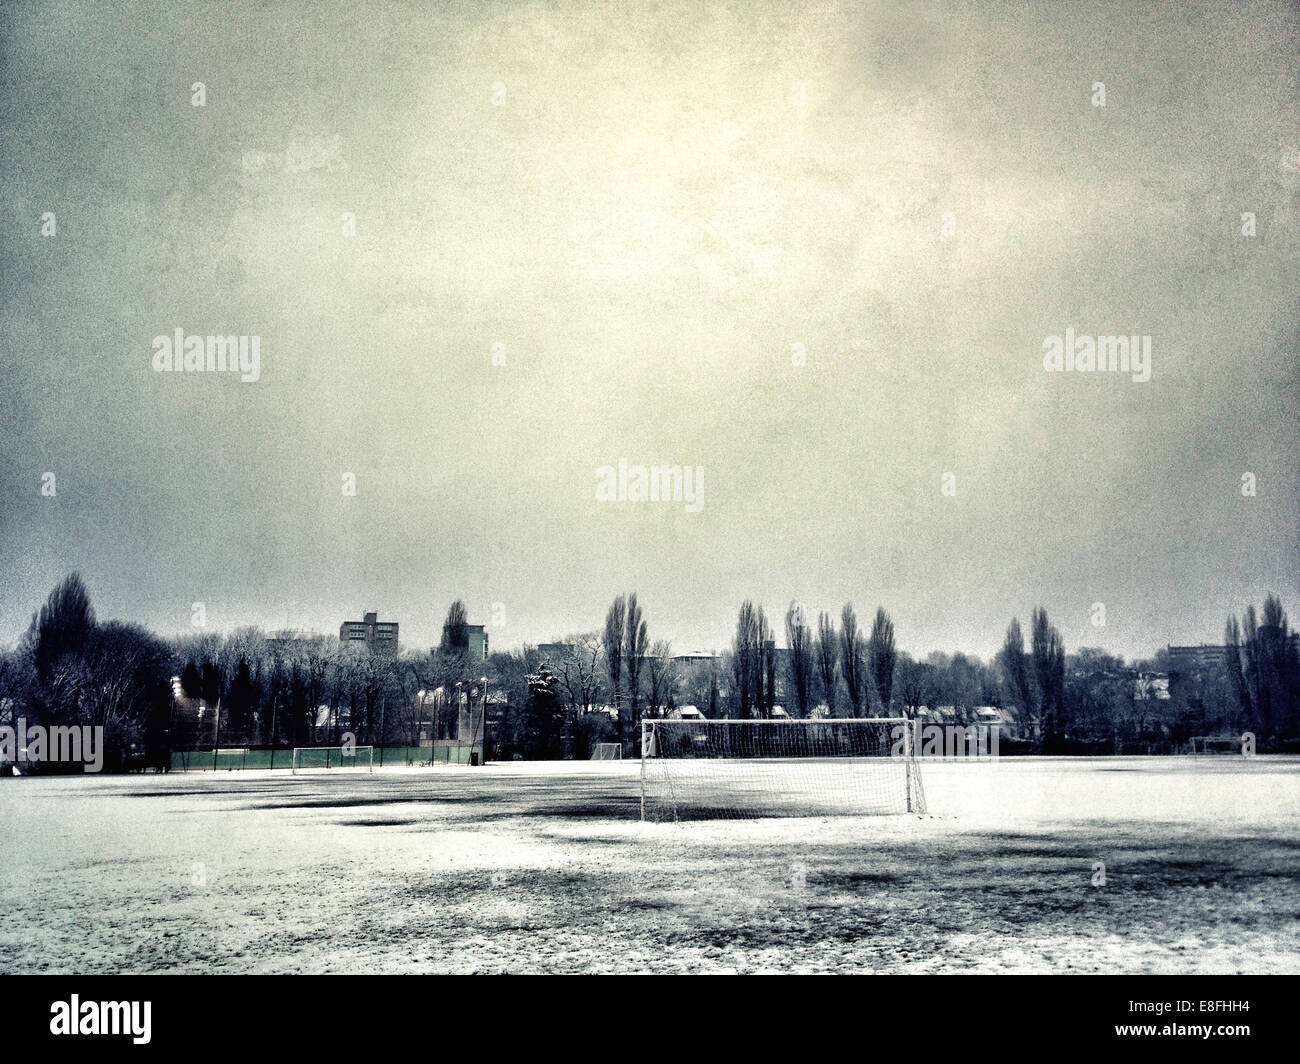 UK, London, London Borough of Haringey, Crouch End, Snow covered football pitch - Stock Image